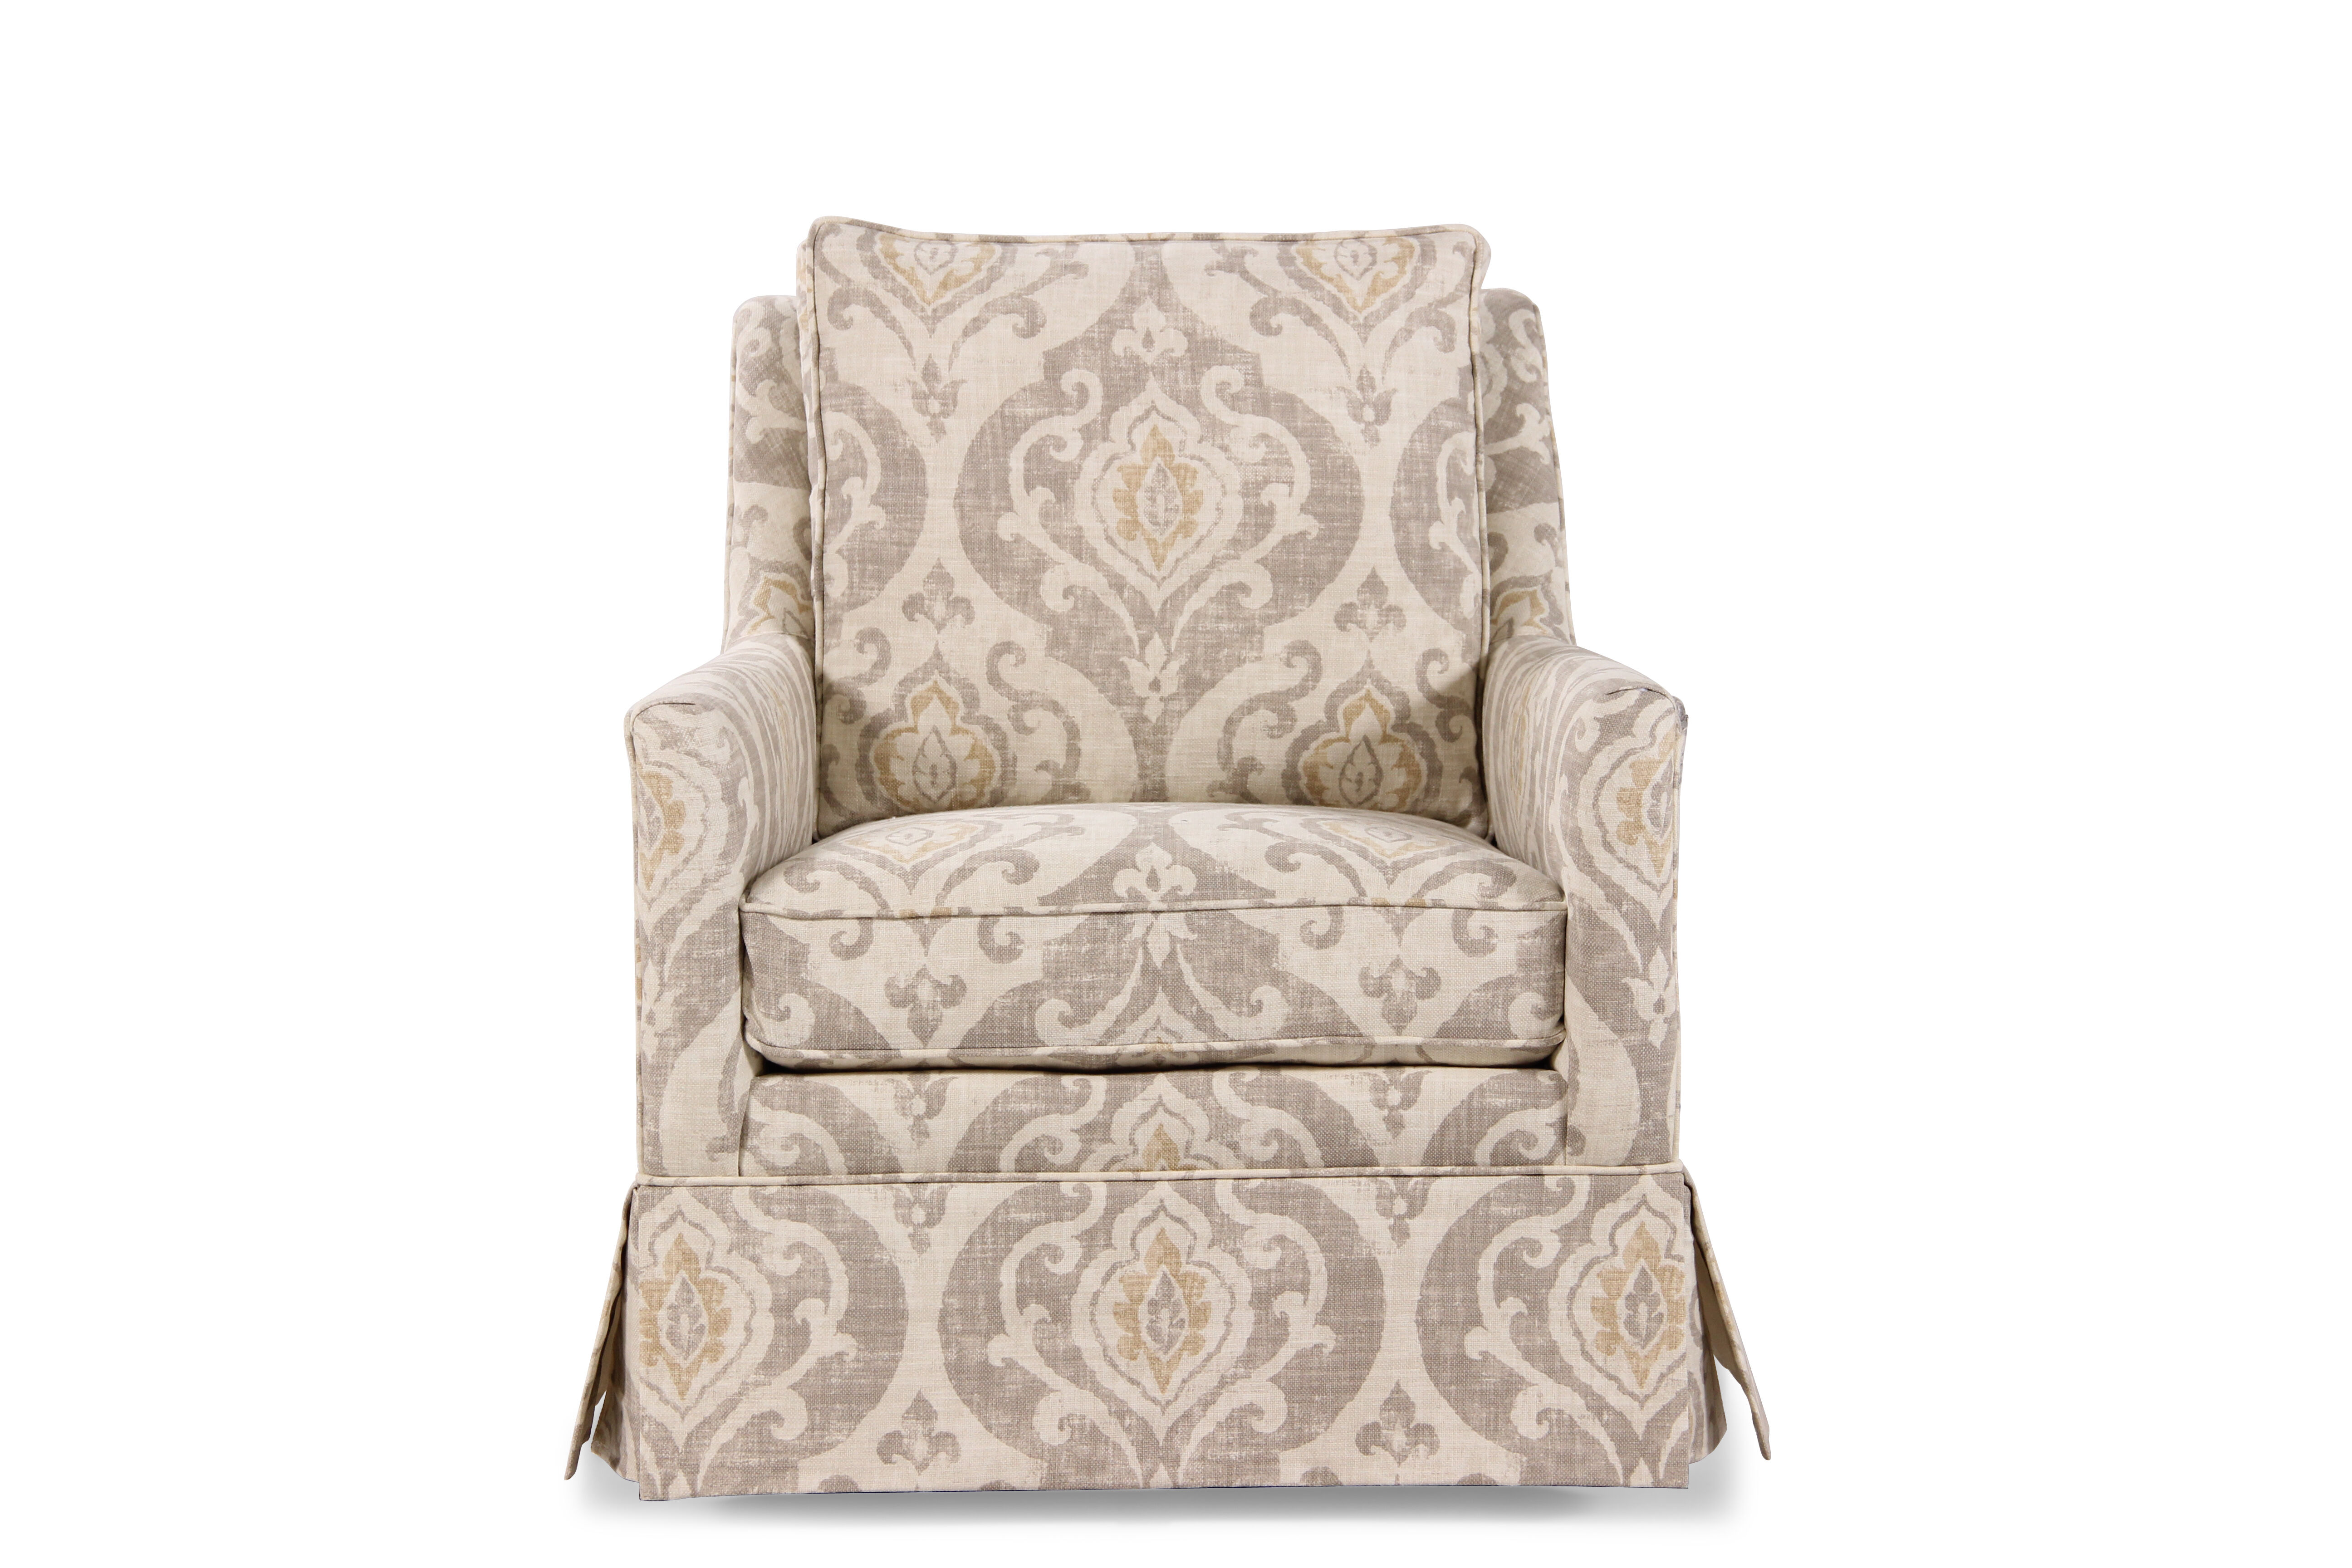 home decor accent chairs steelcase amia chair paisley patterned transitional 29 5 quot swivel in cream